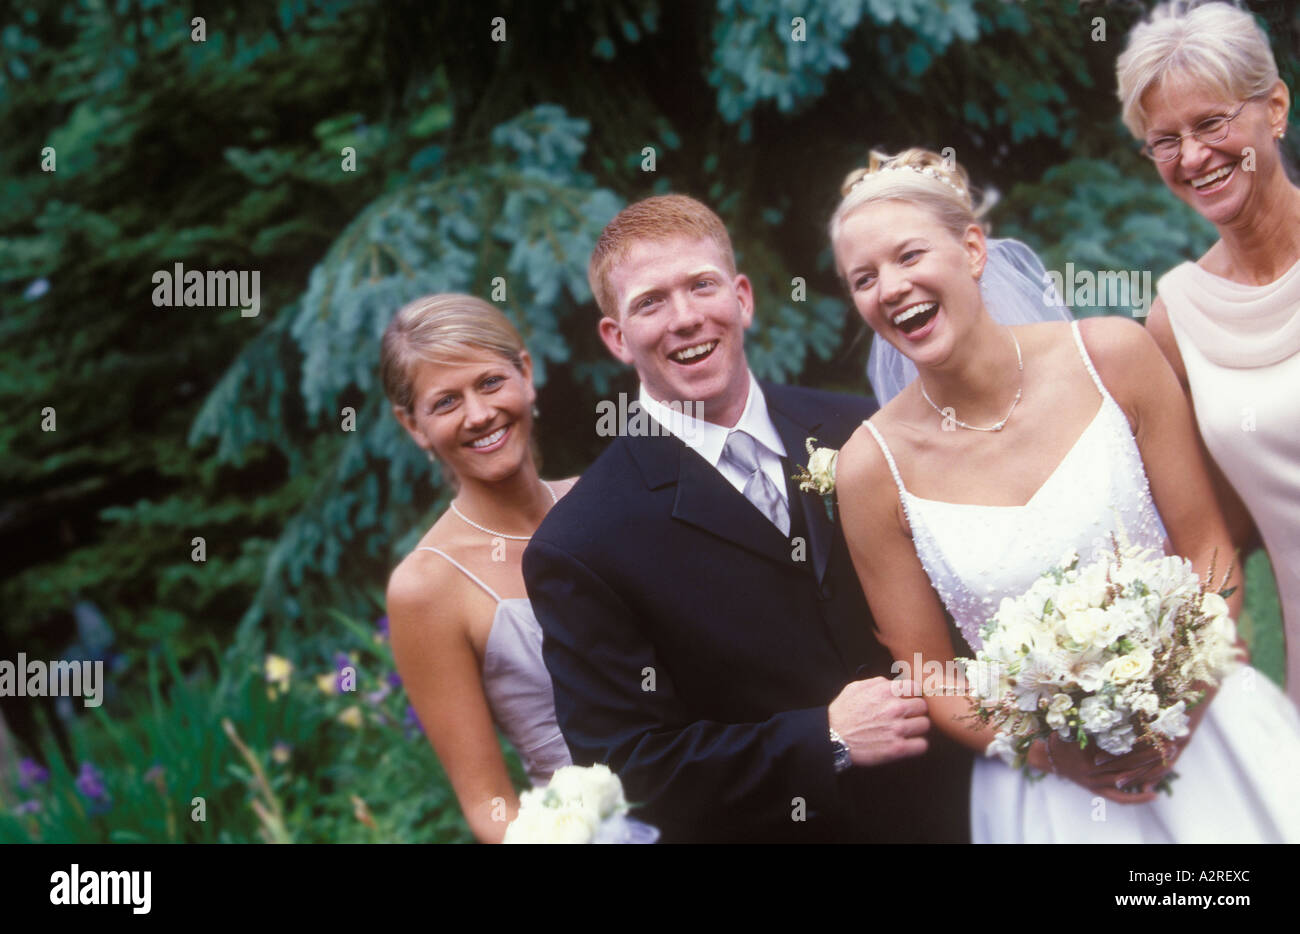 3802cd1ed Portrait of a bride and groom with the brides mother and sister who is the  maid